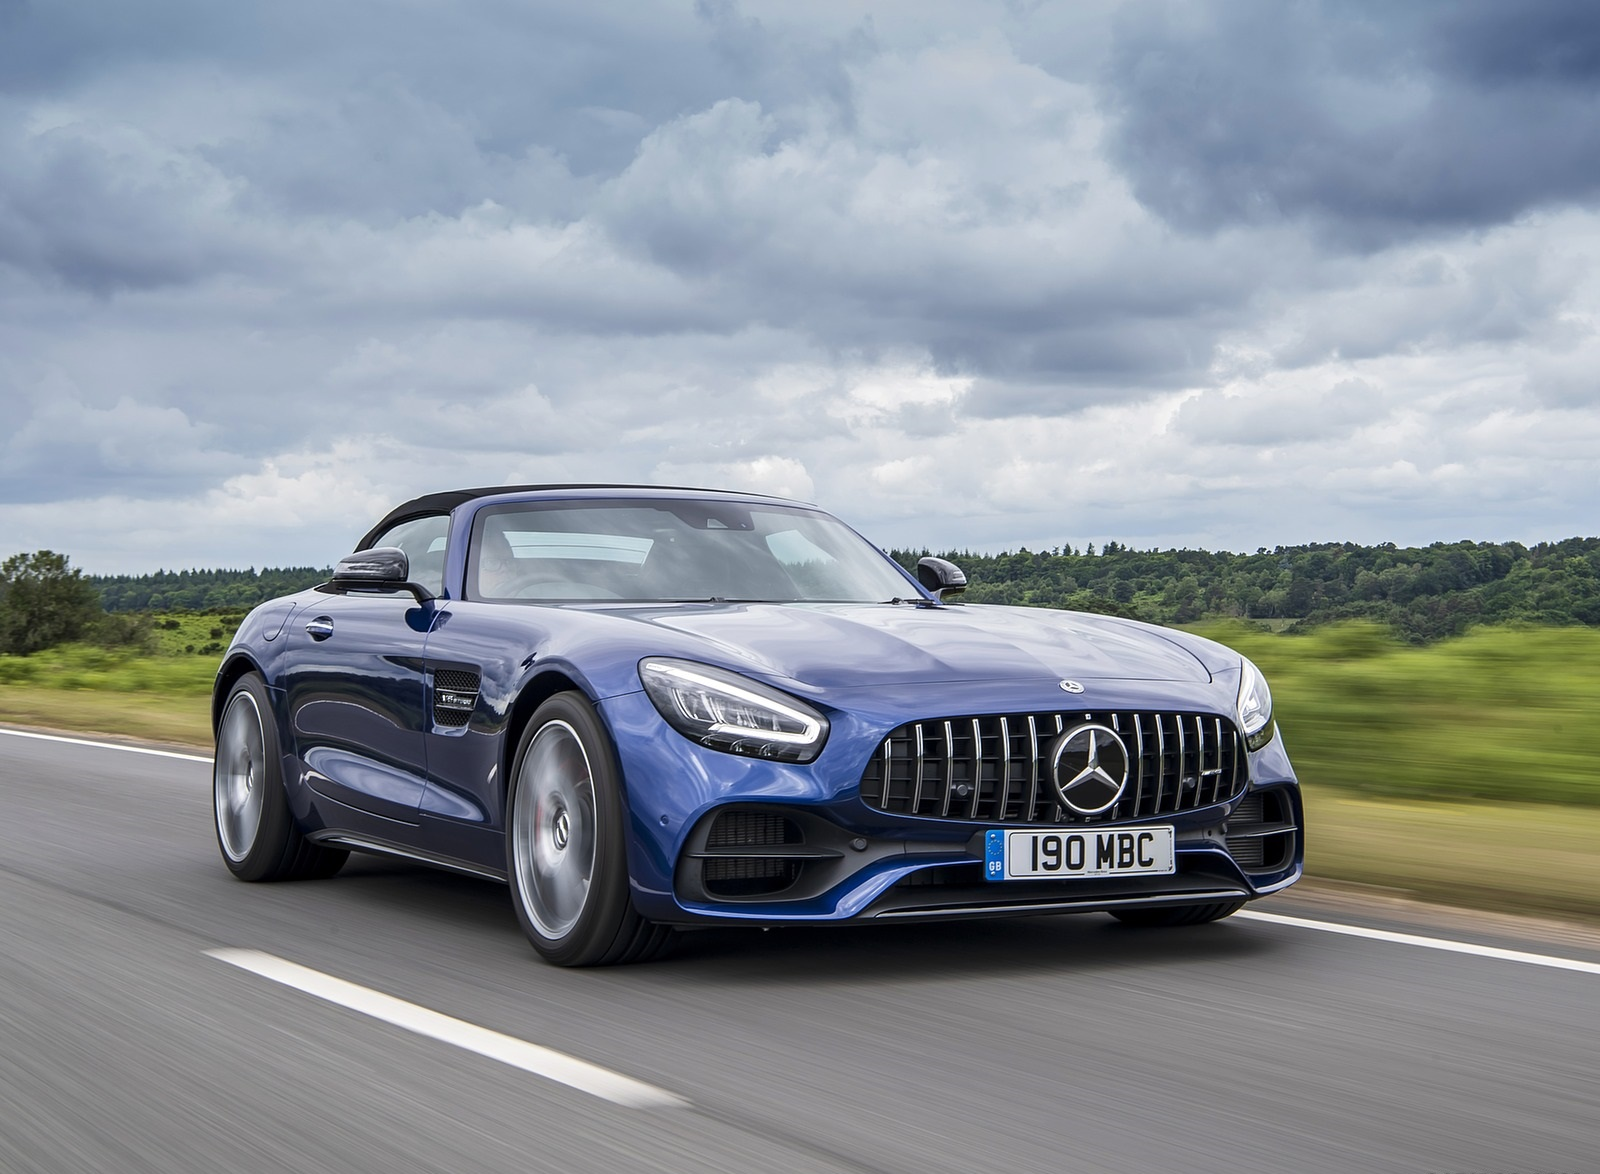 2020 Mercedes-AMG GT S Roadster (UK-Spec) Front Three-Quarter Wallpapers (14)